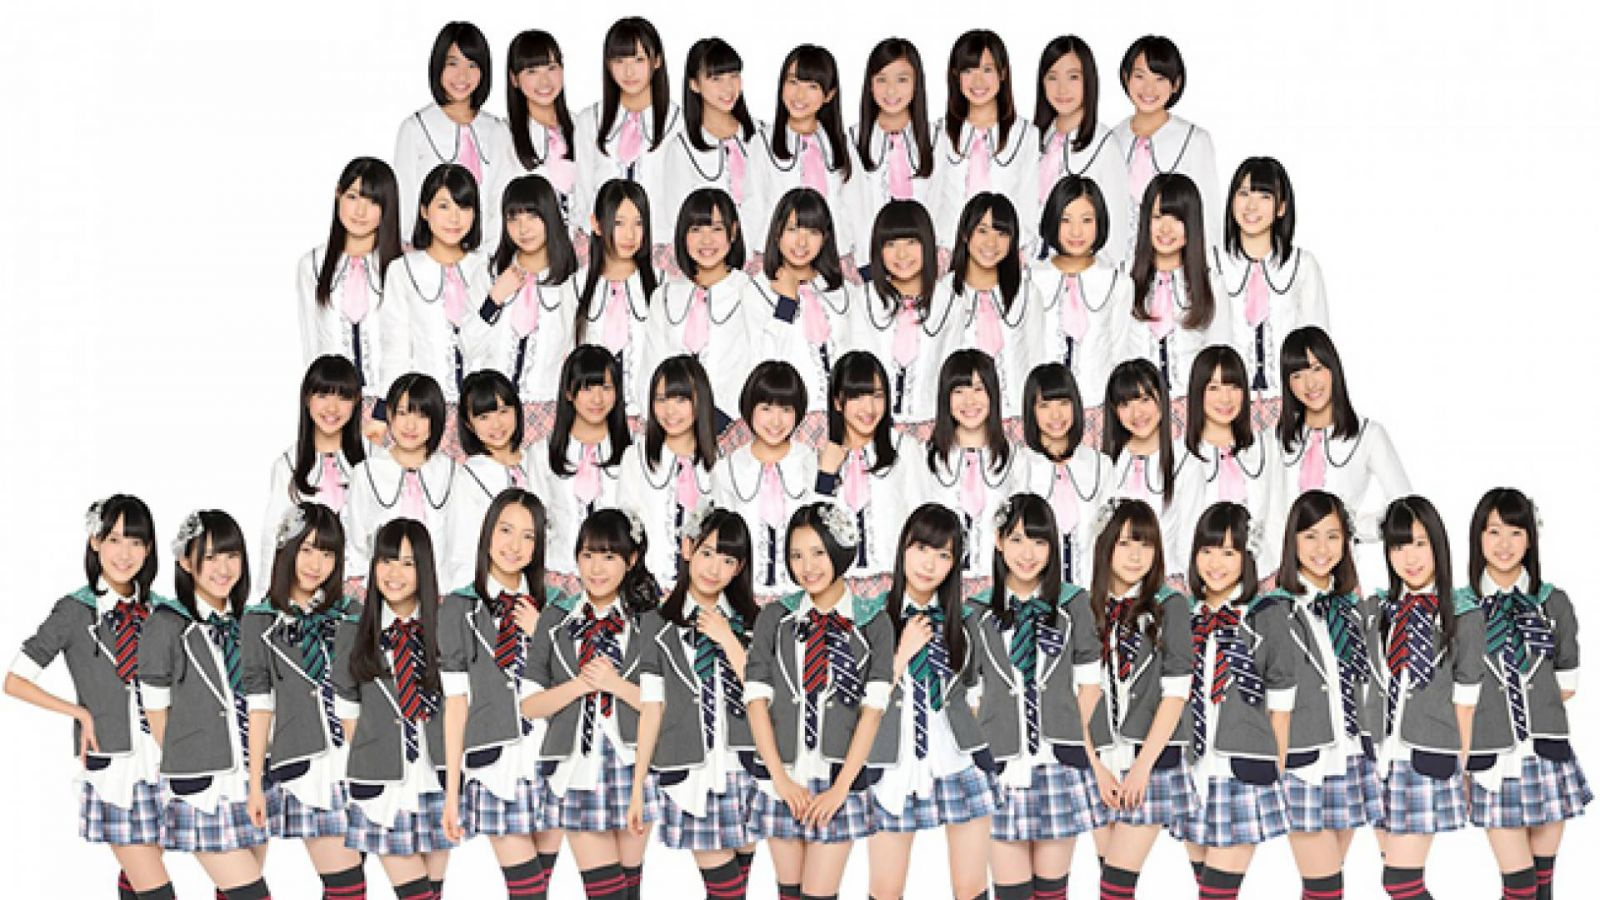 HKT48 © Universal Music Japan, all rights reserved